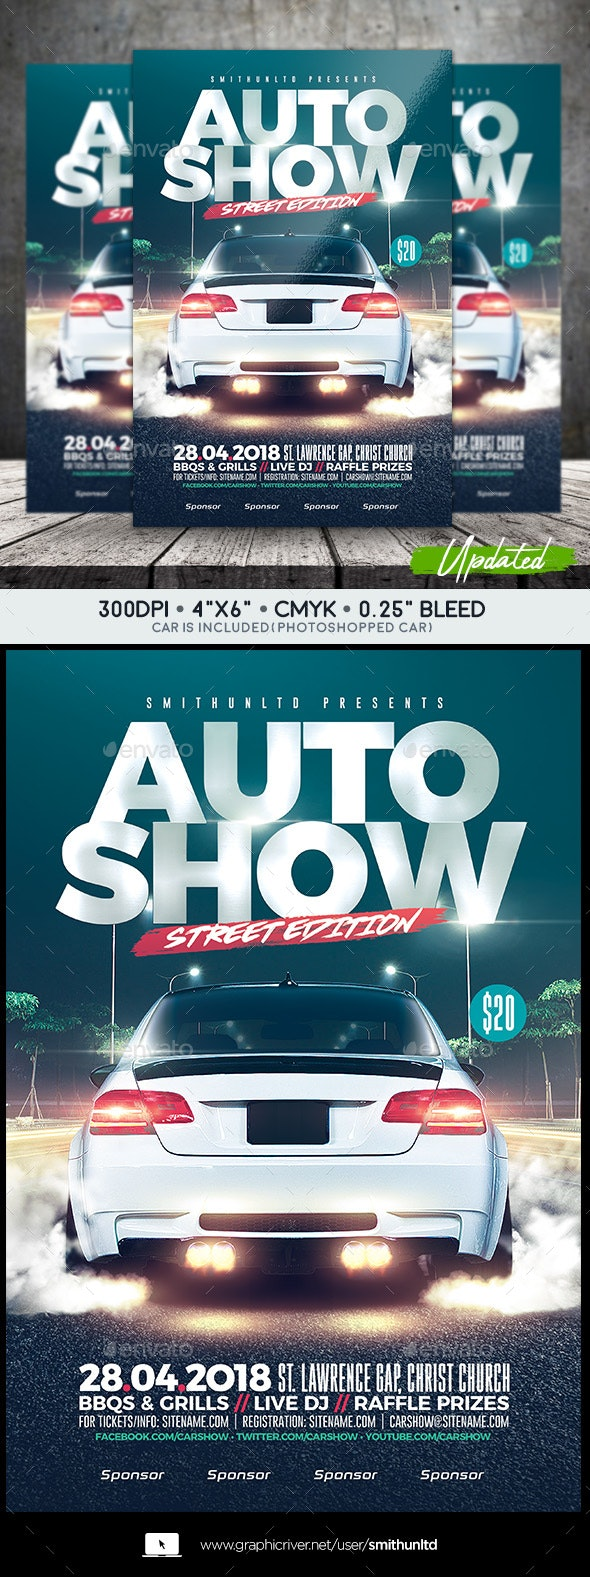 Auto Show - Street Edition - Events Flyers